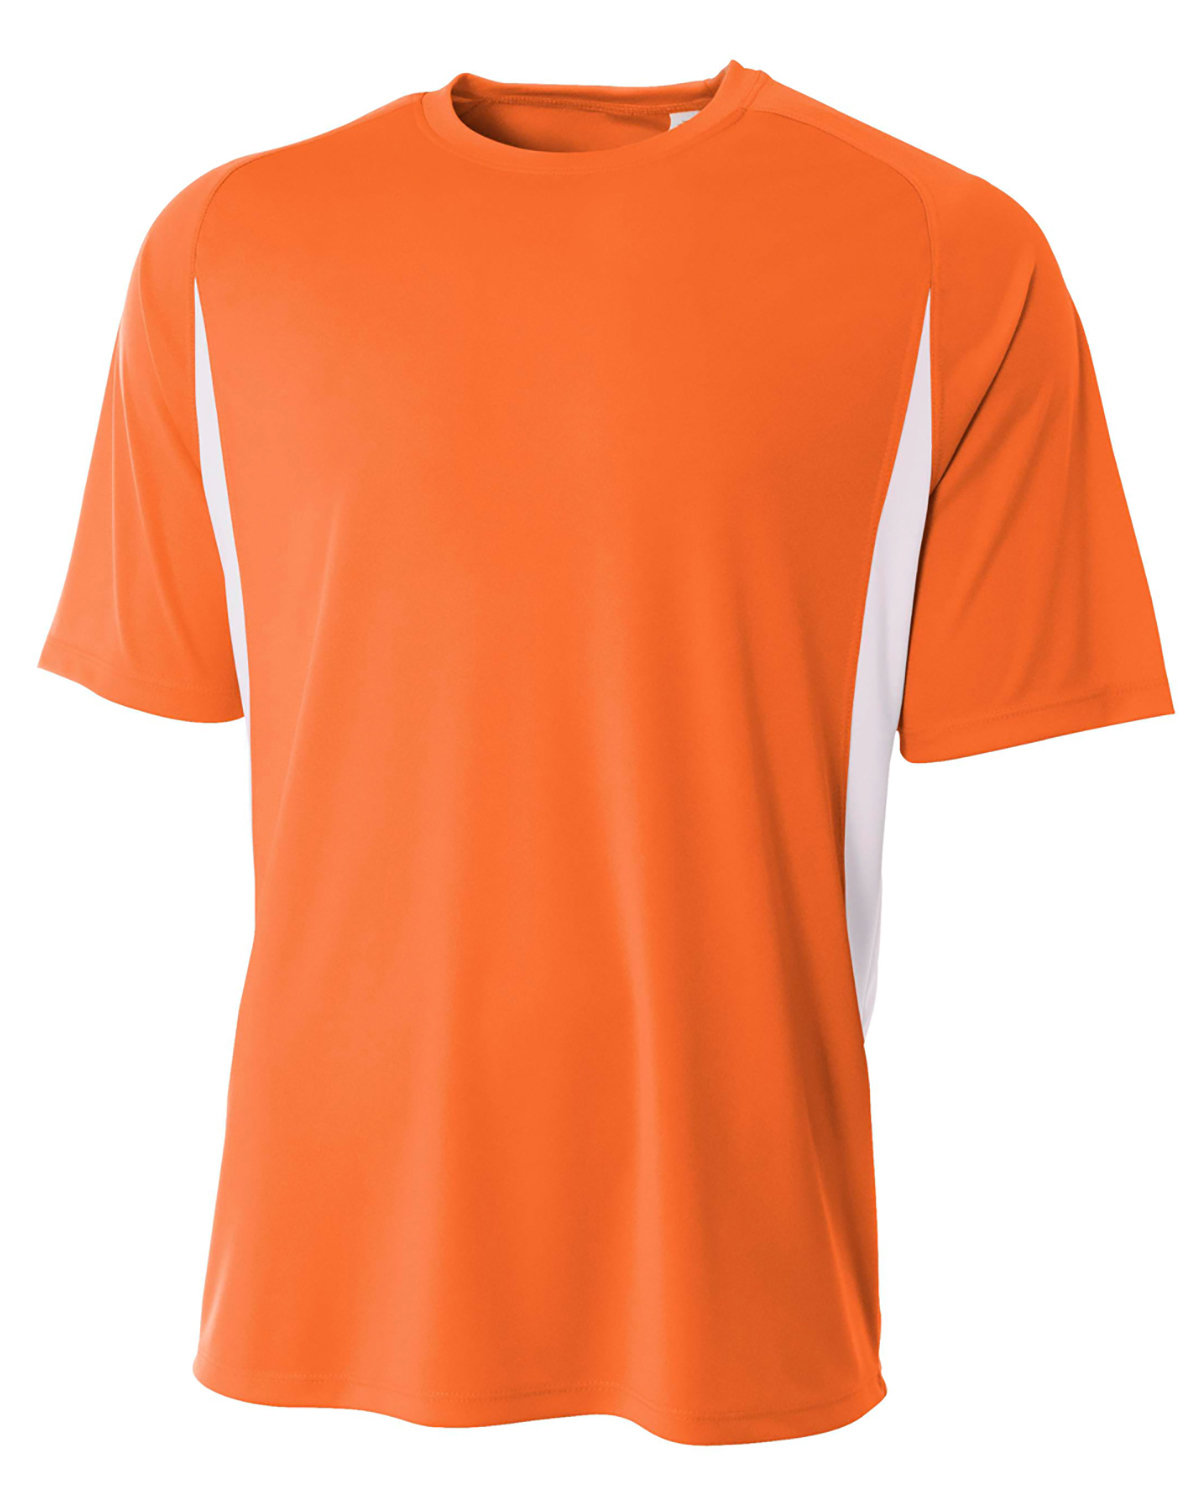 A4 Youth Cooling Performance Color Blocked T-Shirt ORANGE/ WHITE